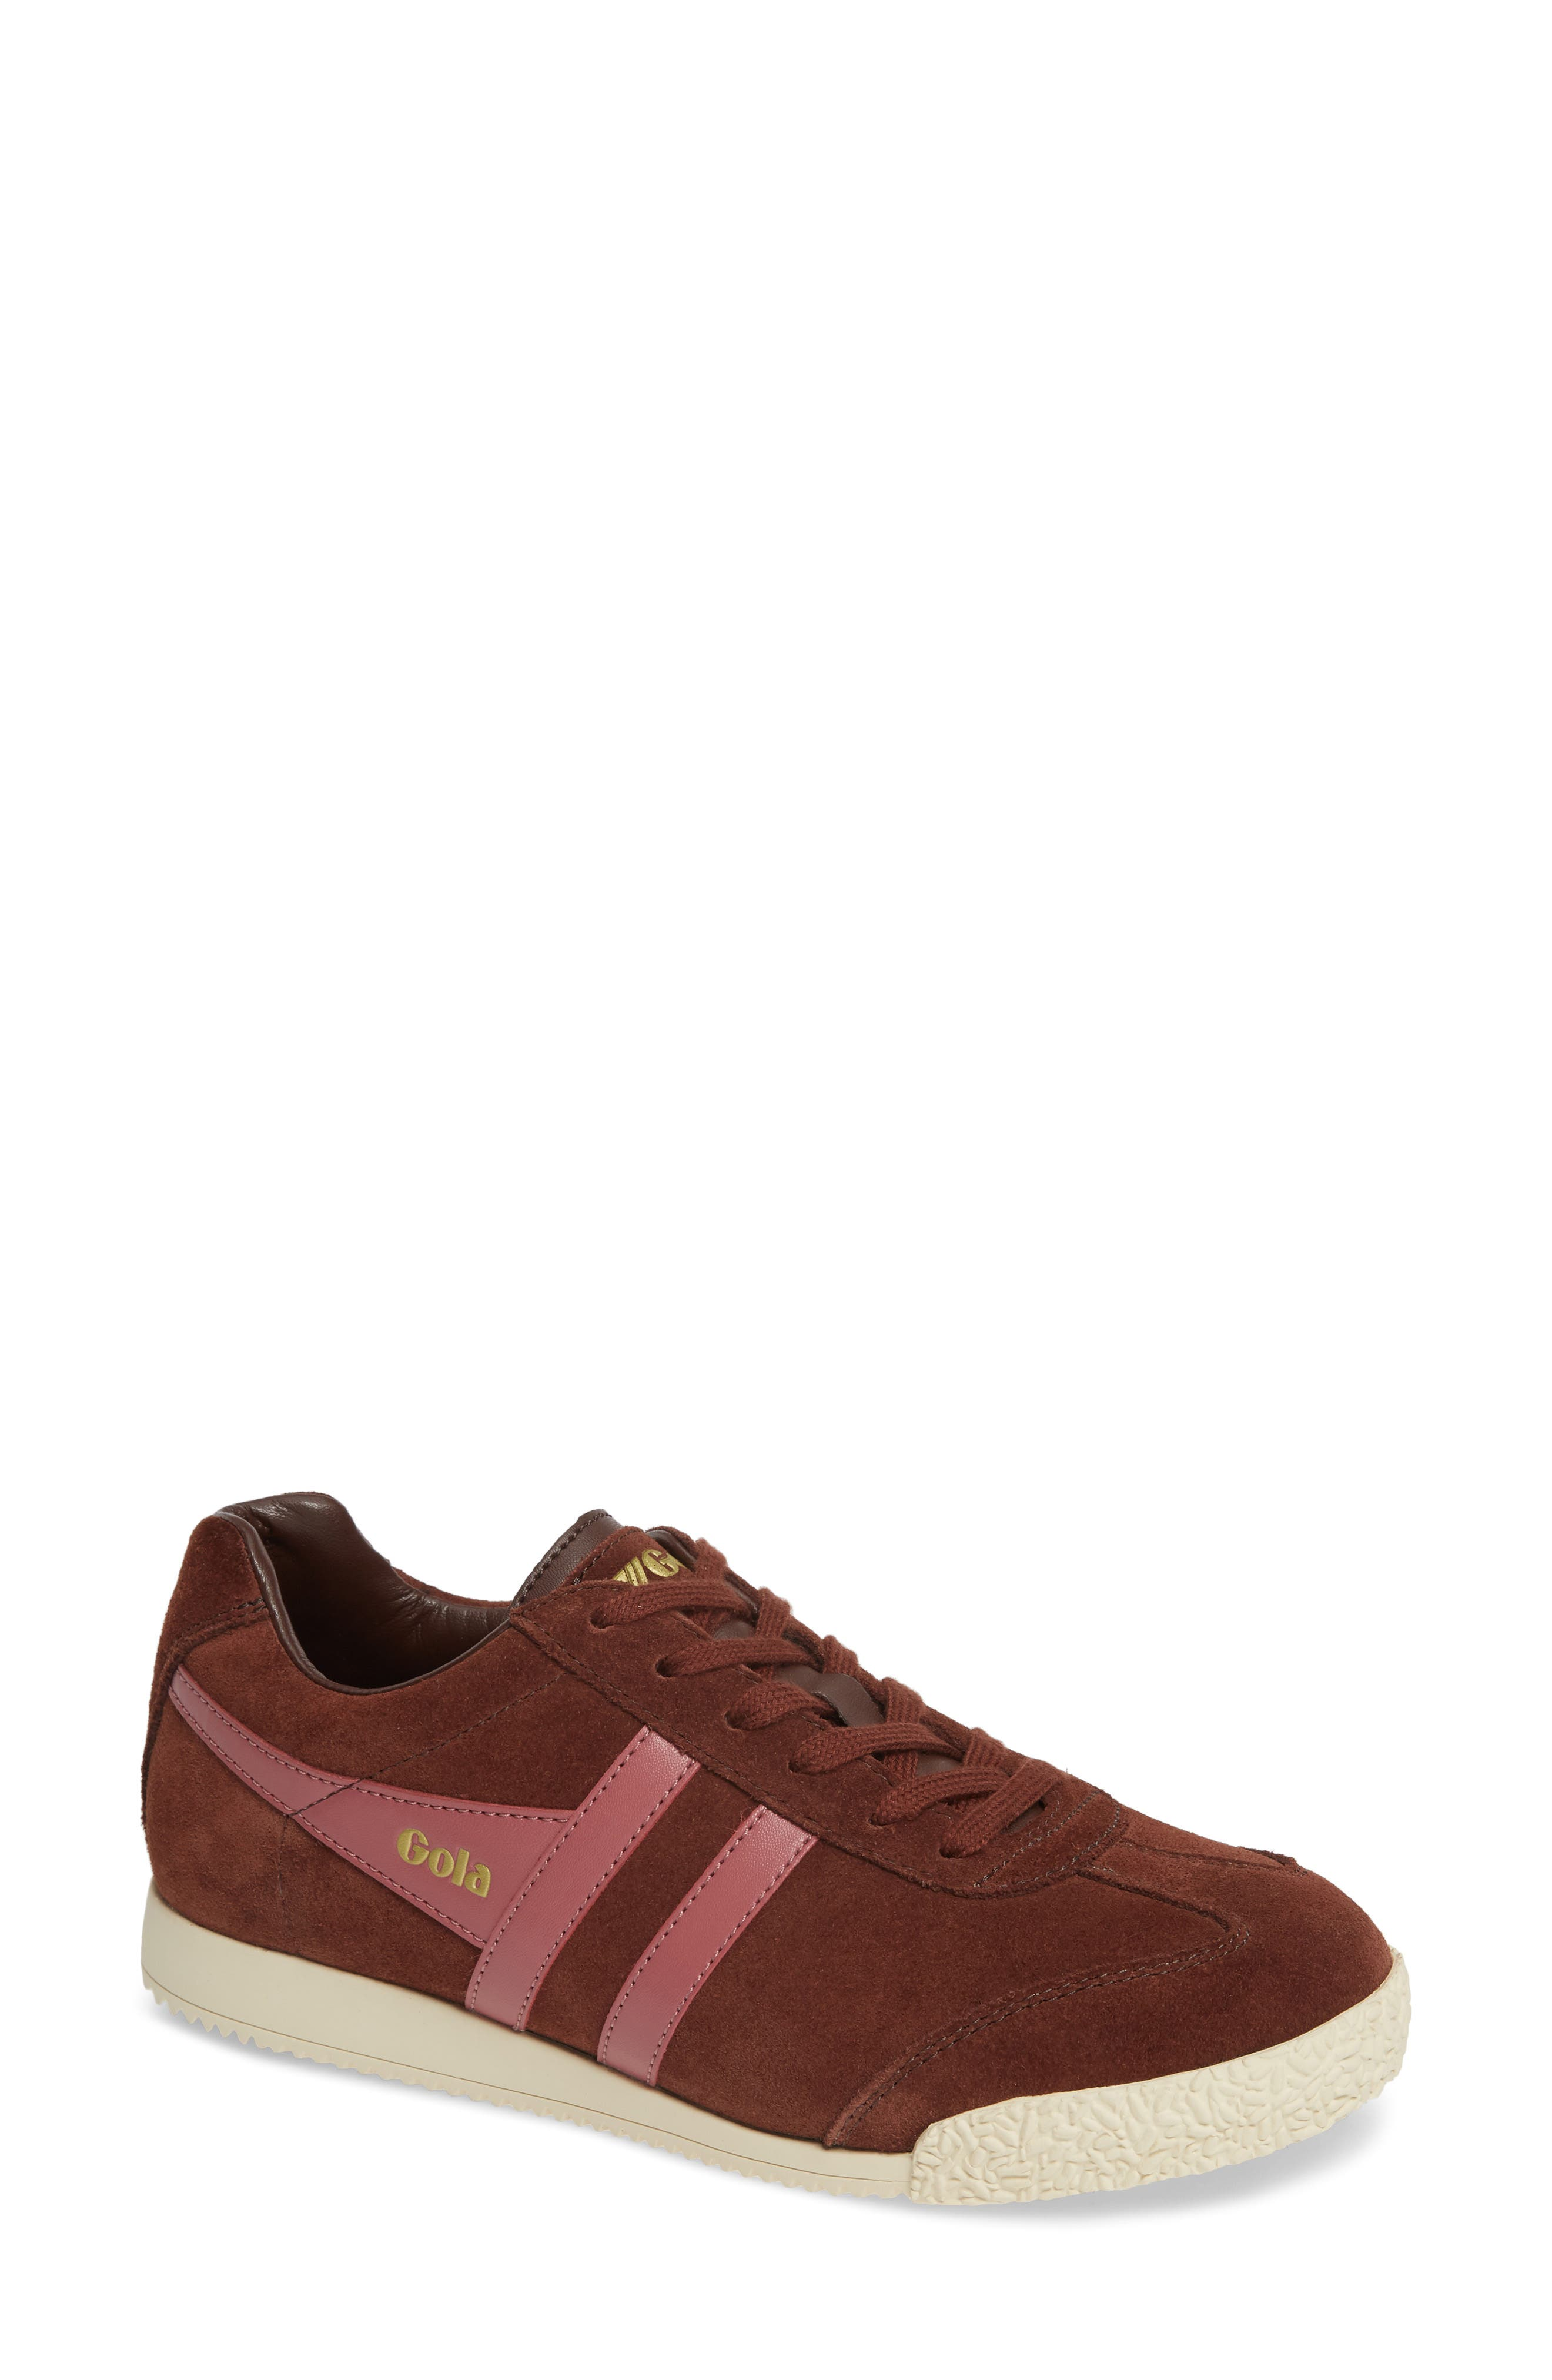 Harrier Suede Low Top Sneaker,                             Main thumbnail 1, color,                             COGNAC/ DUSTY ROSE